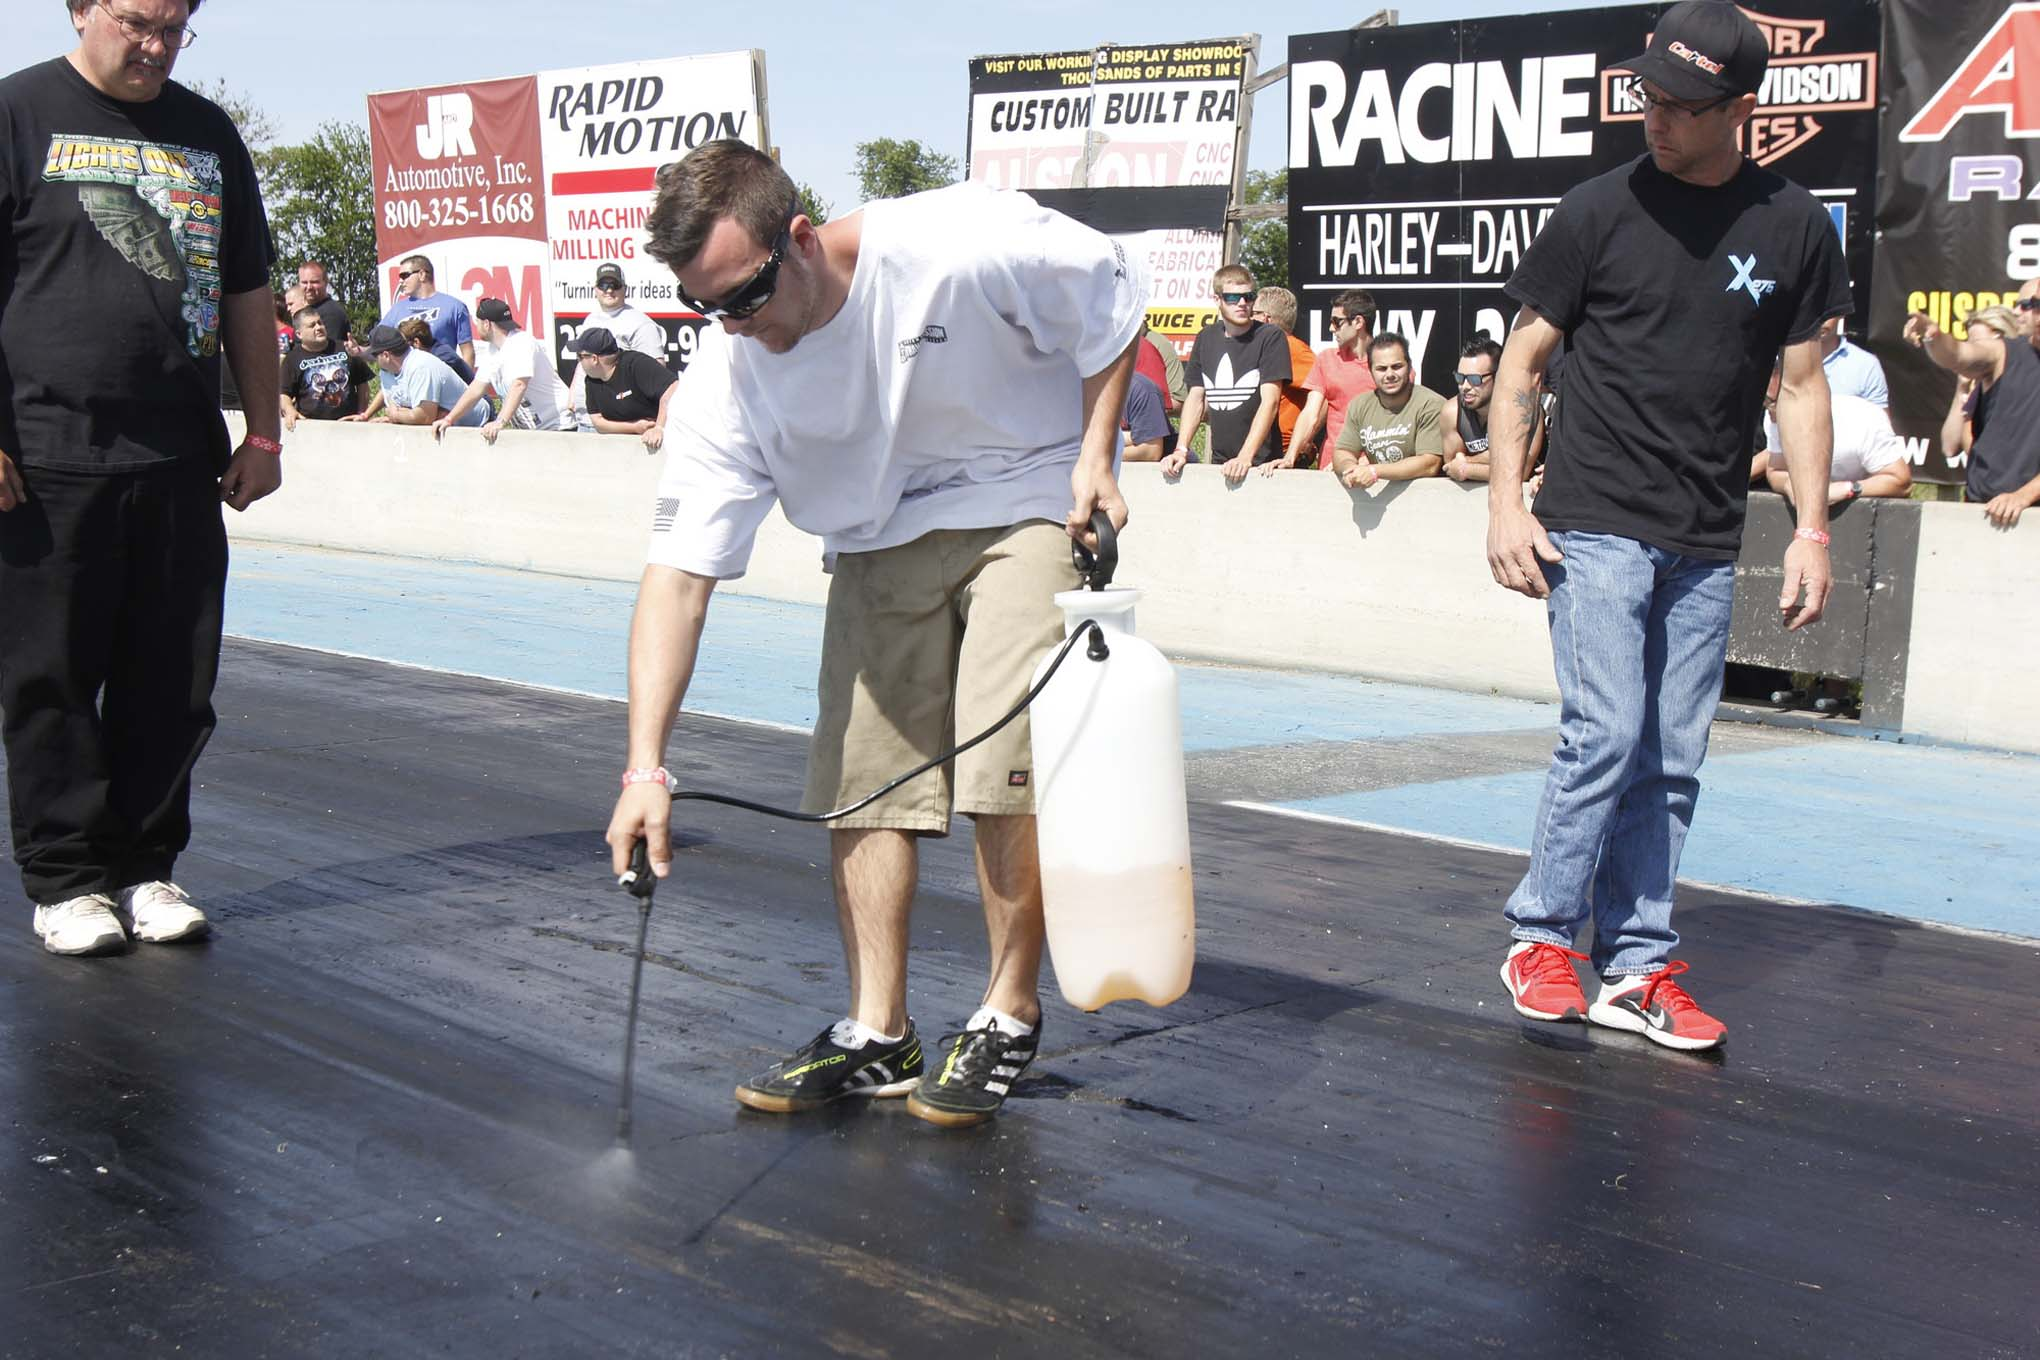 Traction compound is only allowed in the burnout area, so the track feels like a prepped surface up to the starting line. Jason Rueckert told us that even at a no-prep race, the traction compound tends to be carried out to about the 60-foot light.